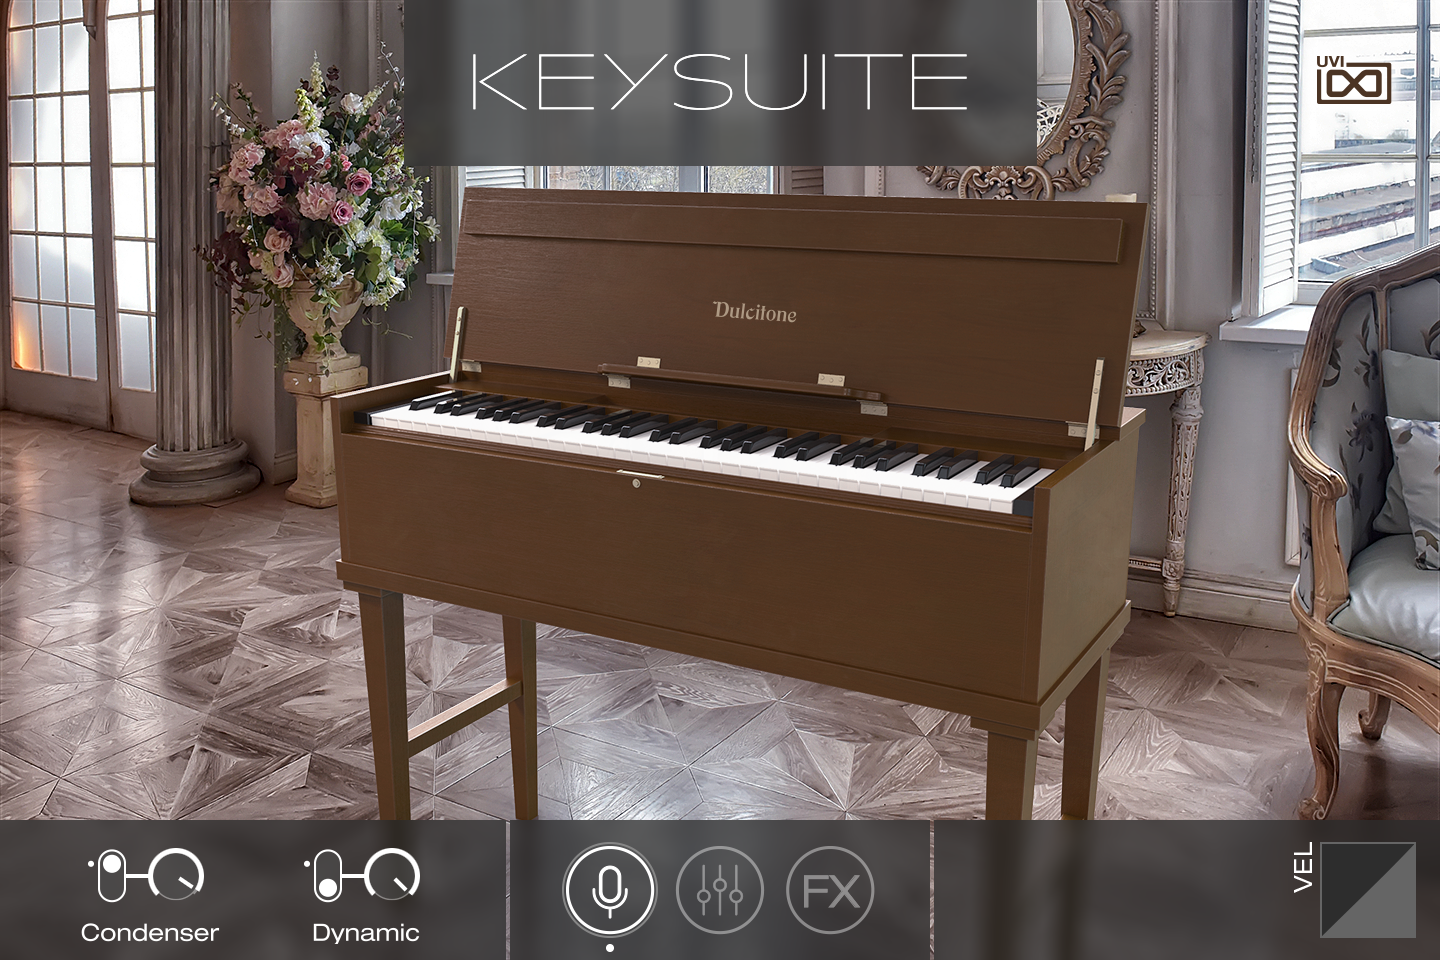 UVI Key Suite Acoustic | Dulcitone Main